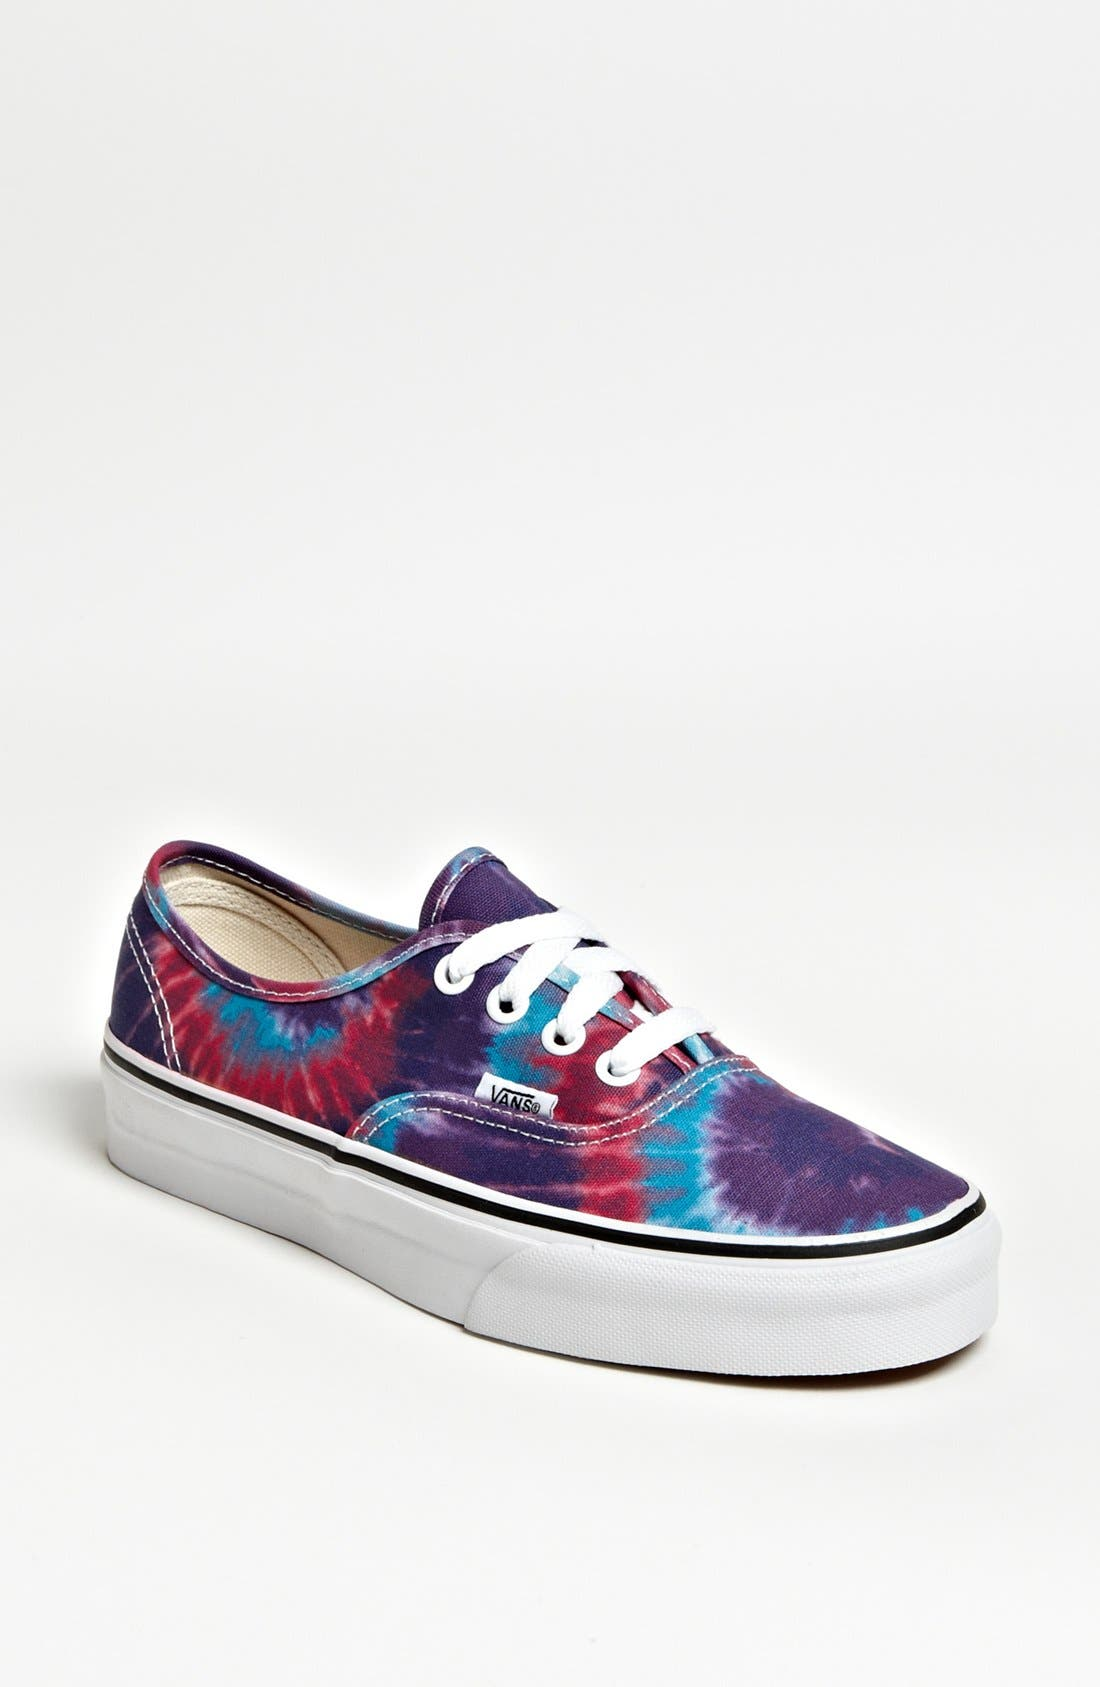 Main Image - Vans 'Authentic - Tie Dye' Sneaker (Women)